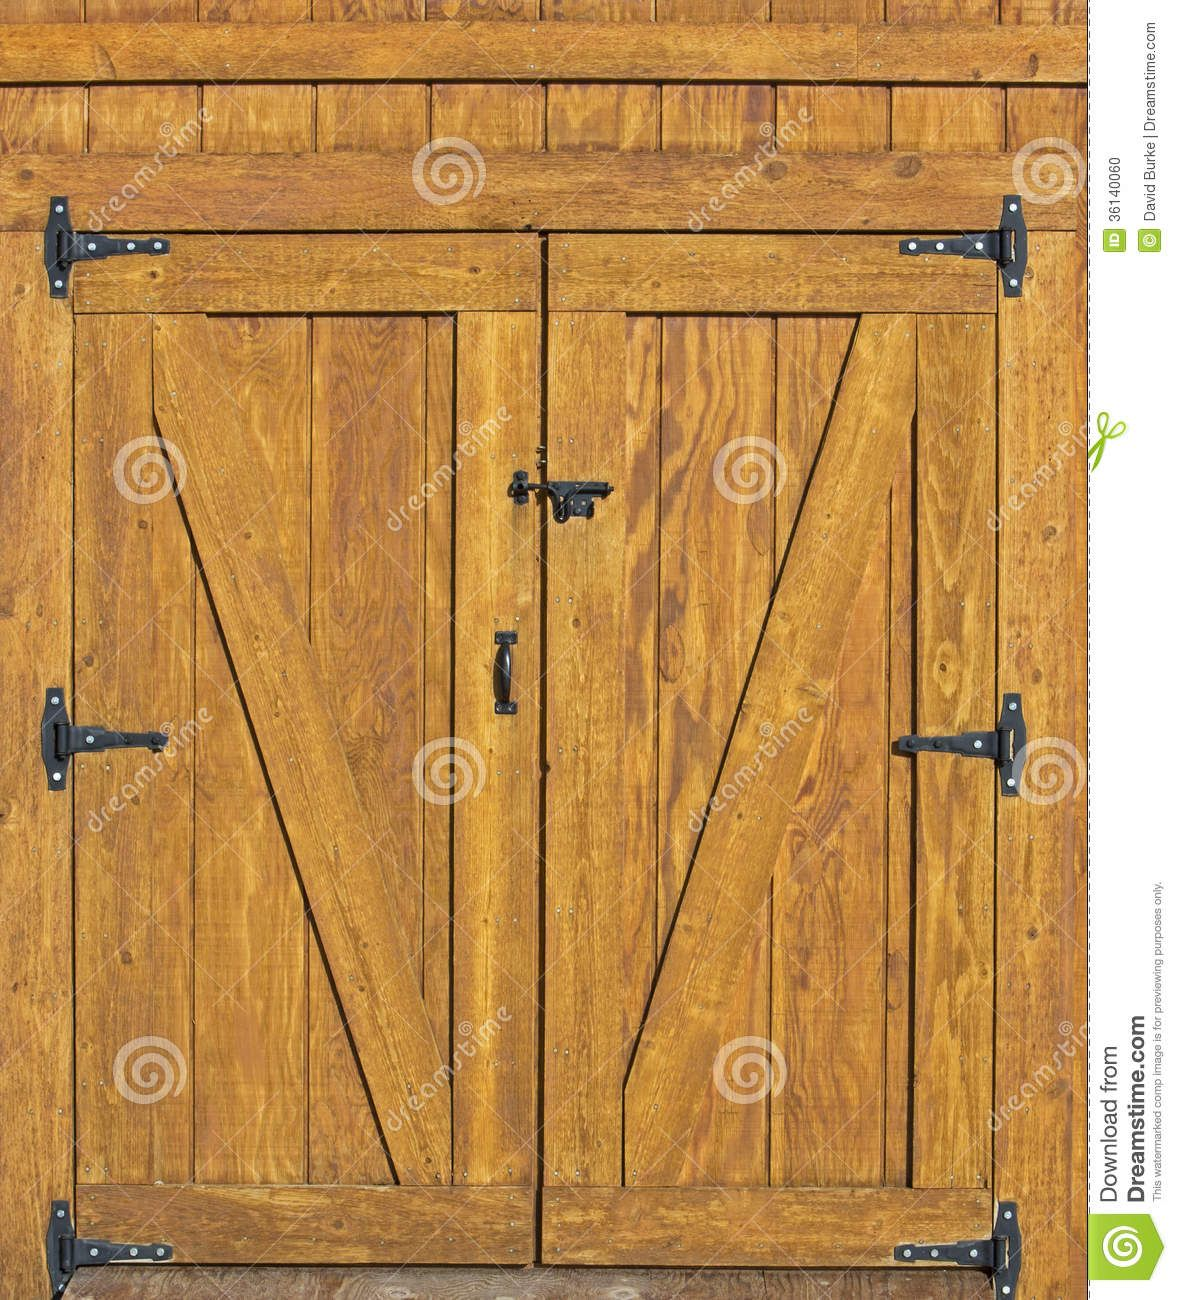 Incroyable Barn Door Background Rural Building Plank Doors Black Hinges Would